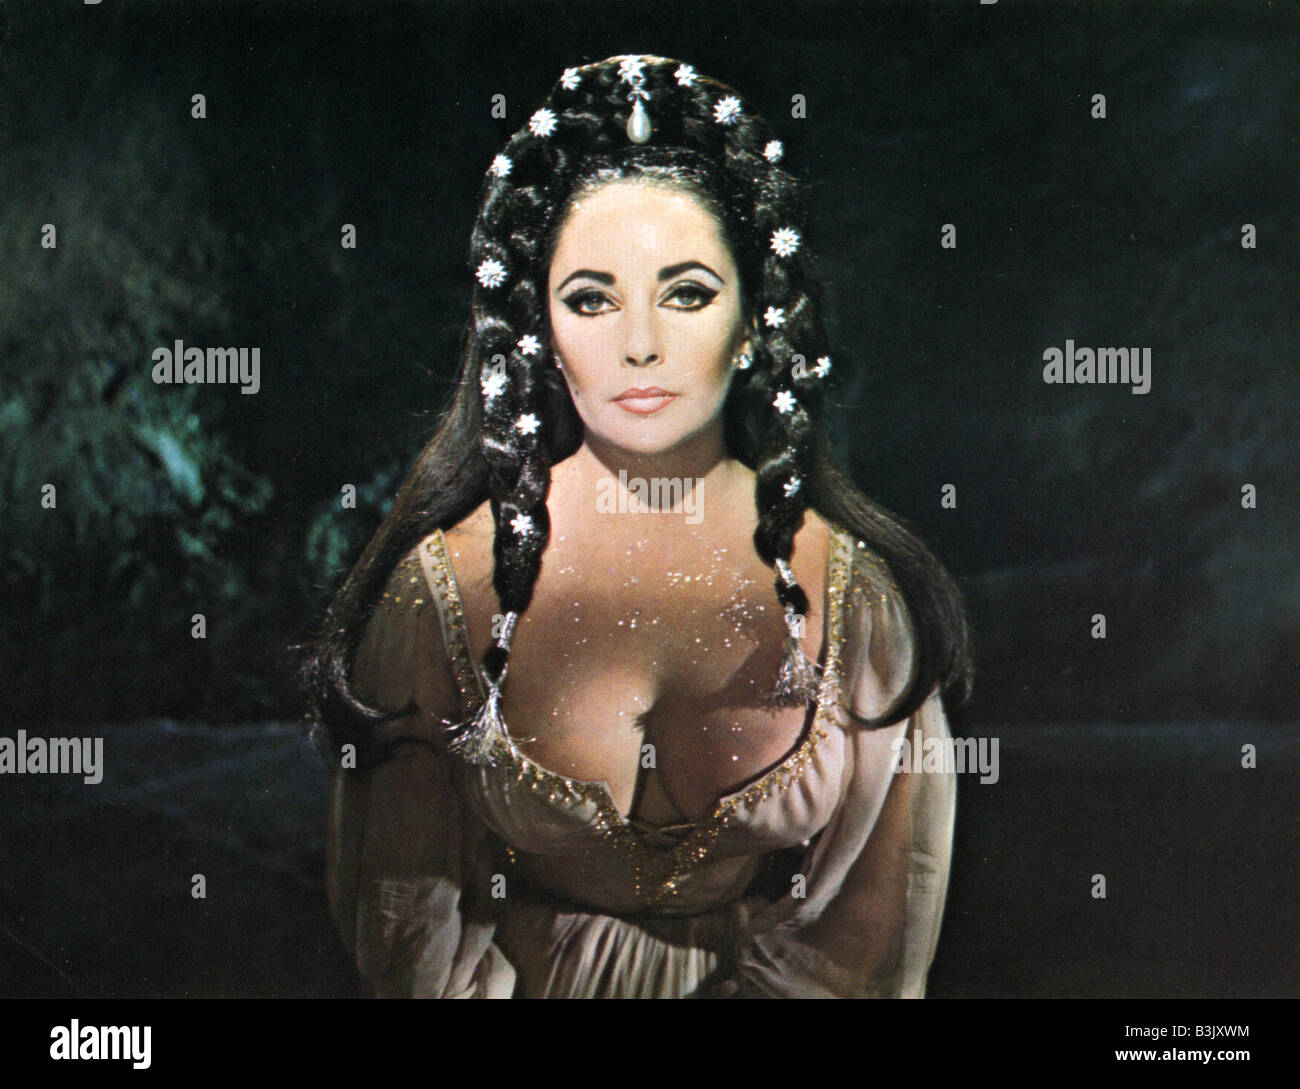 DR FAUSTUS  1967 Columbia film with Elizabeth Taylor - Stock Image